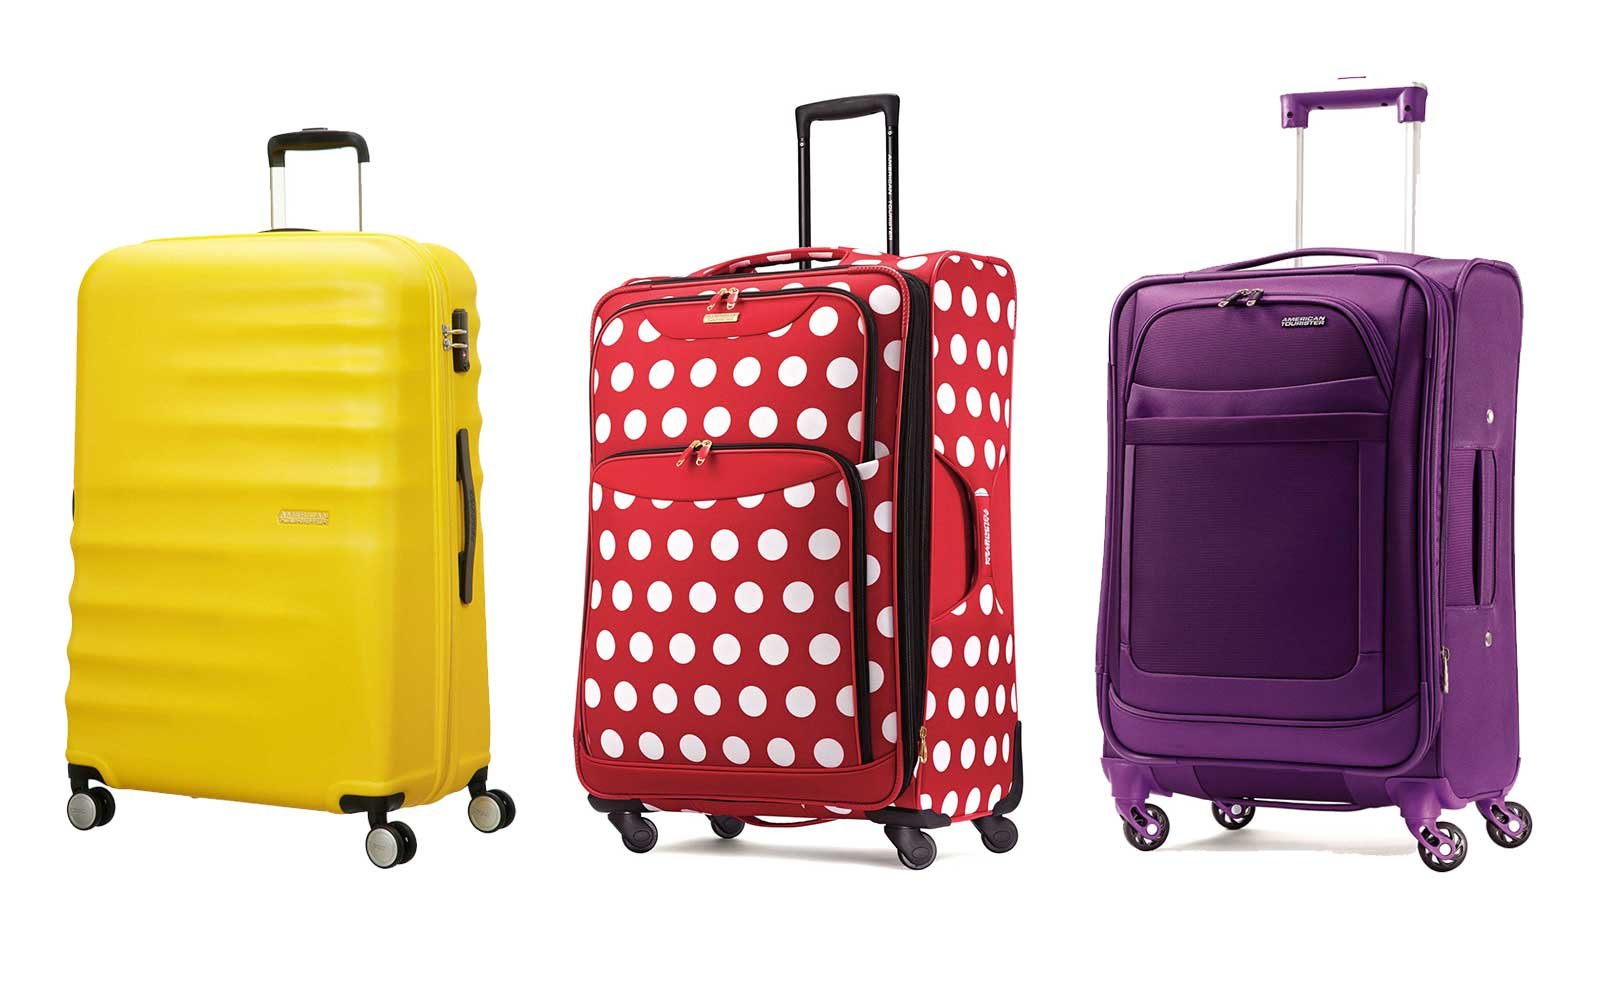 c4993e8d2557 The Best Luggage Brands for Every Budget